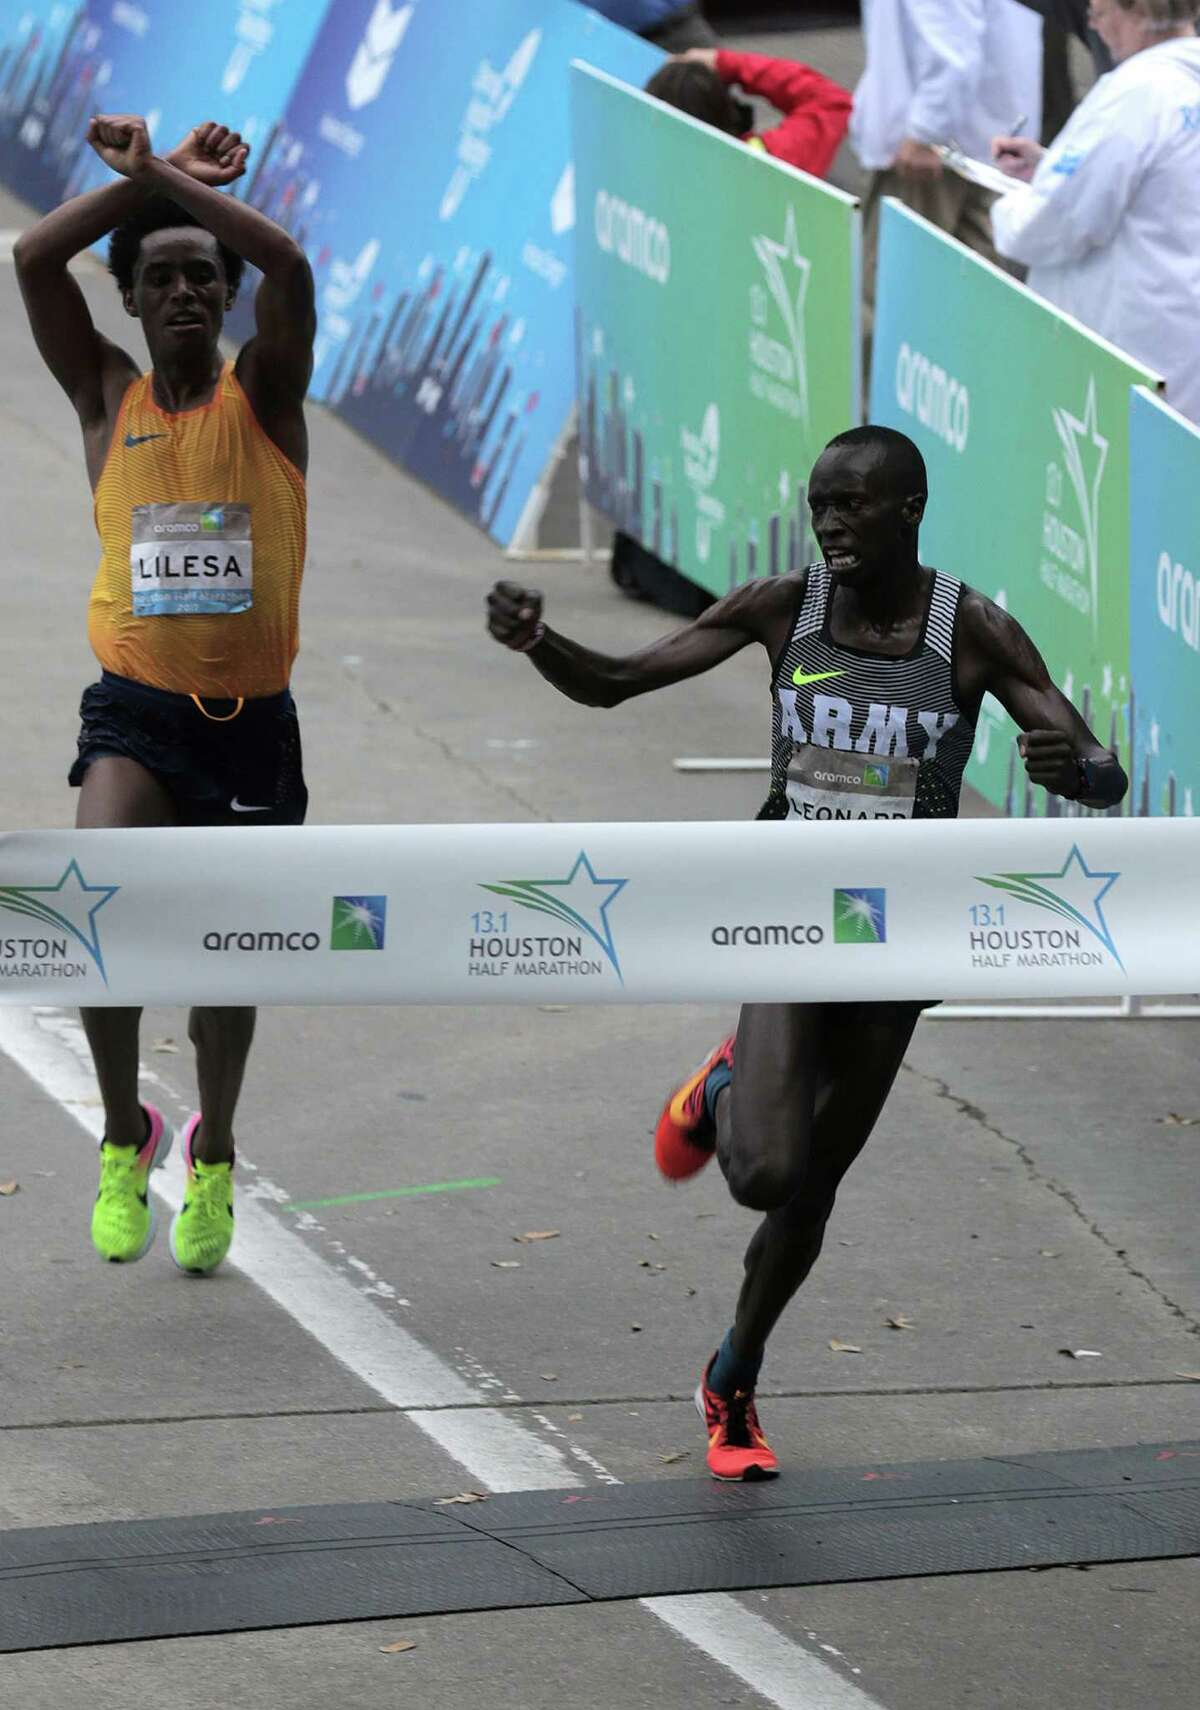 Leonard Korir of USA edges out Feyisa Lilesa Gemechu of Ethiopia to win the Houston Half Marathon on Sunday, Jan. 15, 2017, in Houston.